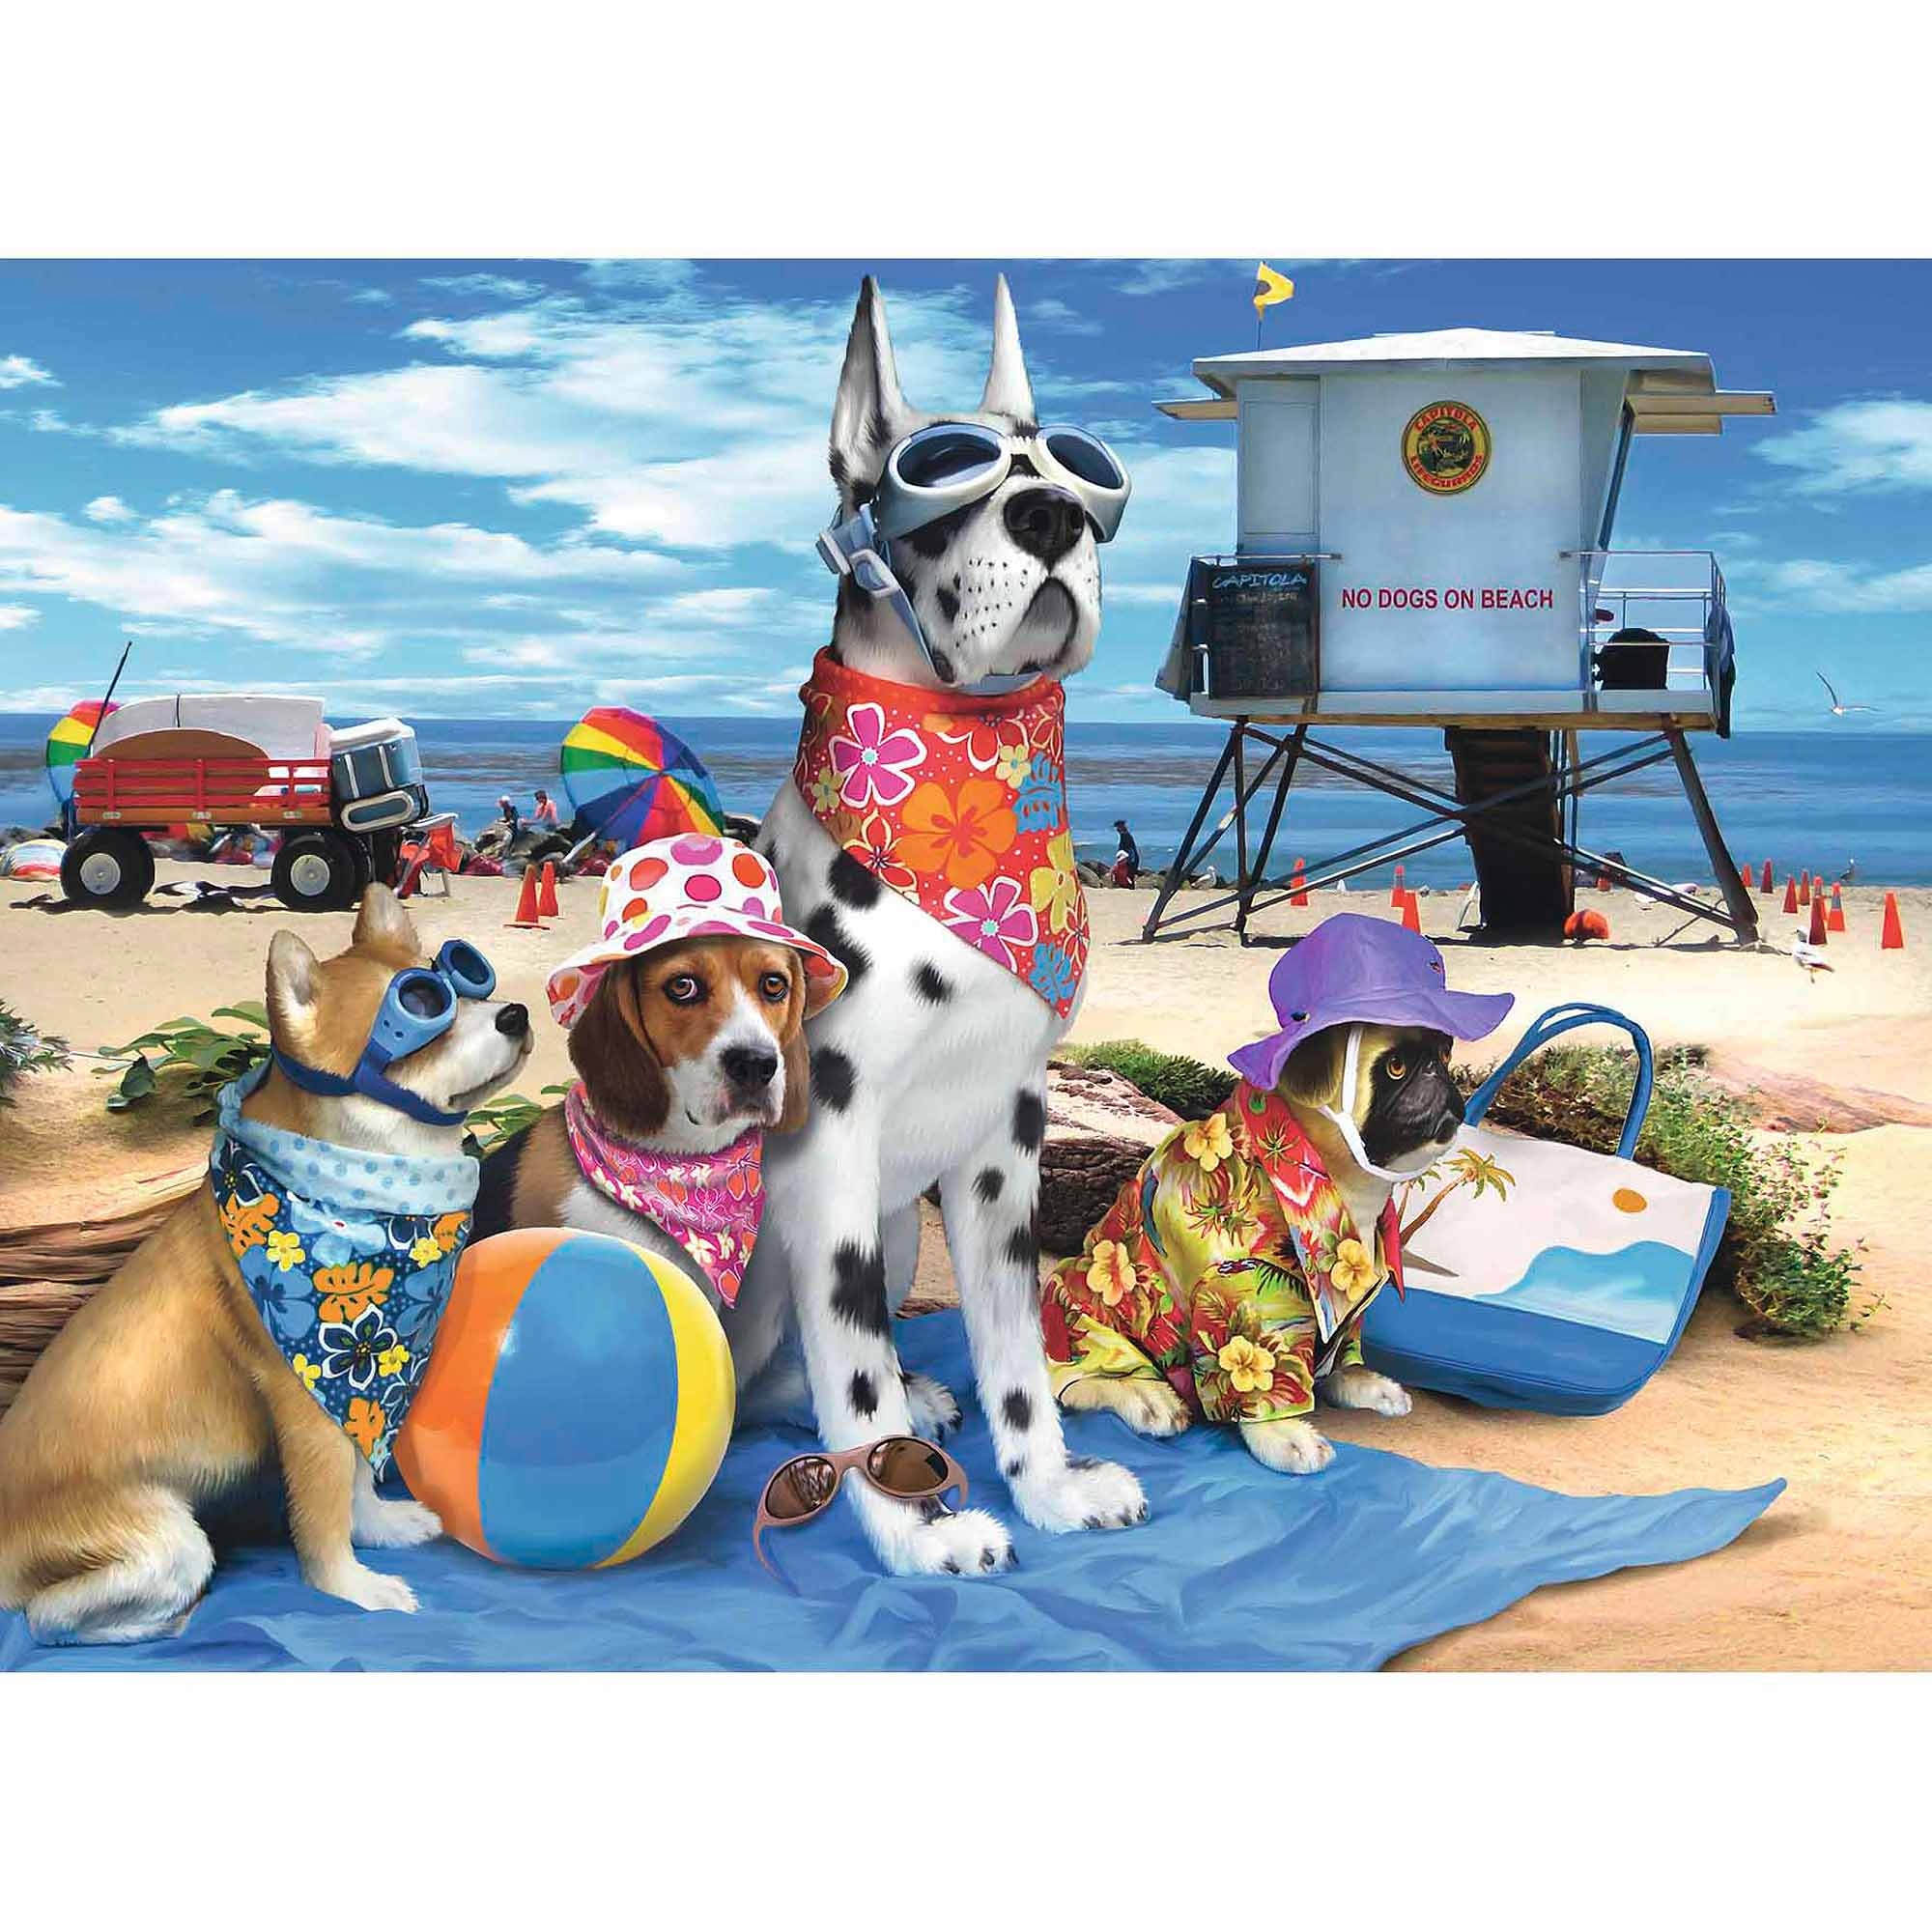 No Dogs on the Beach Puzzle, 100 Pieces